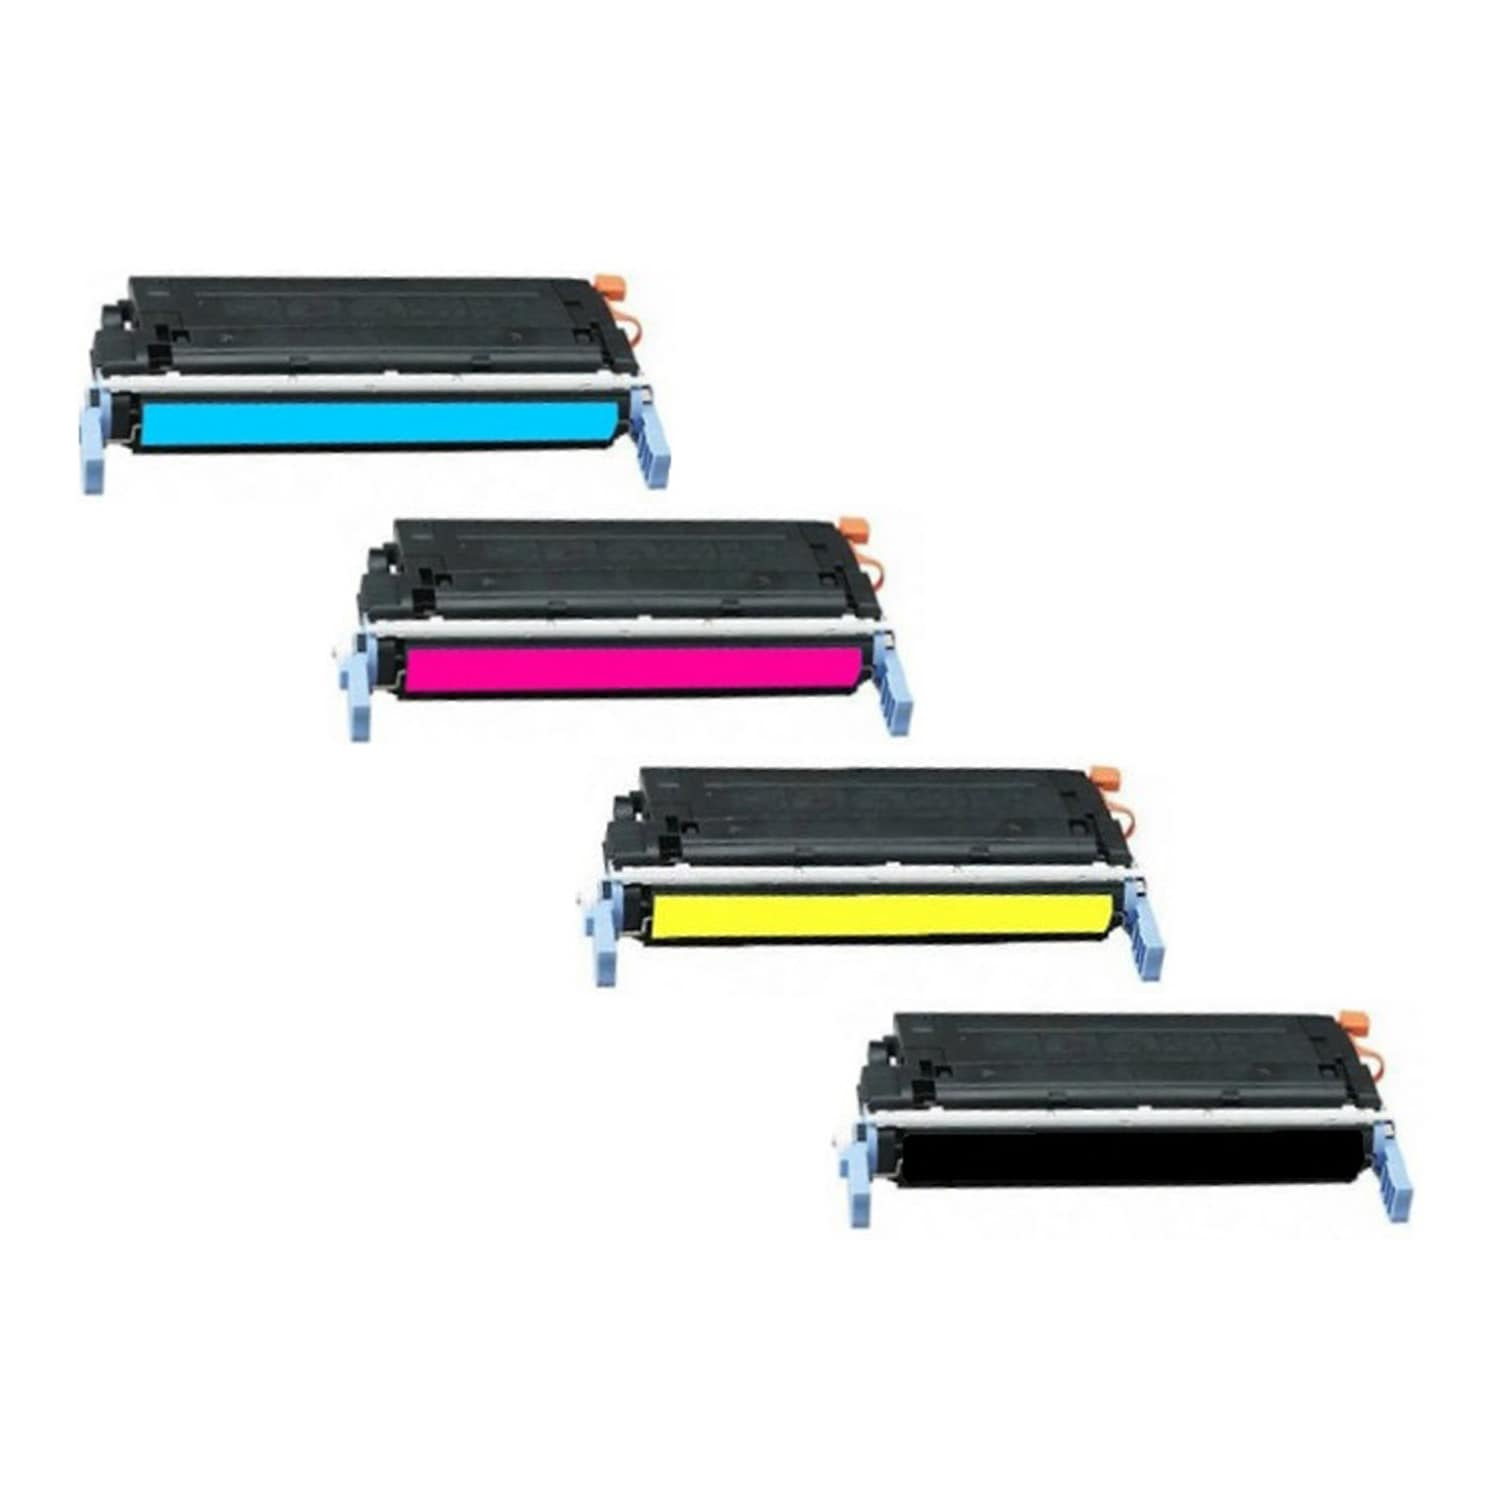 Remanufactured Canon EP-86 Toner Pack - 4 Cartridges